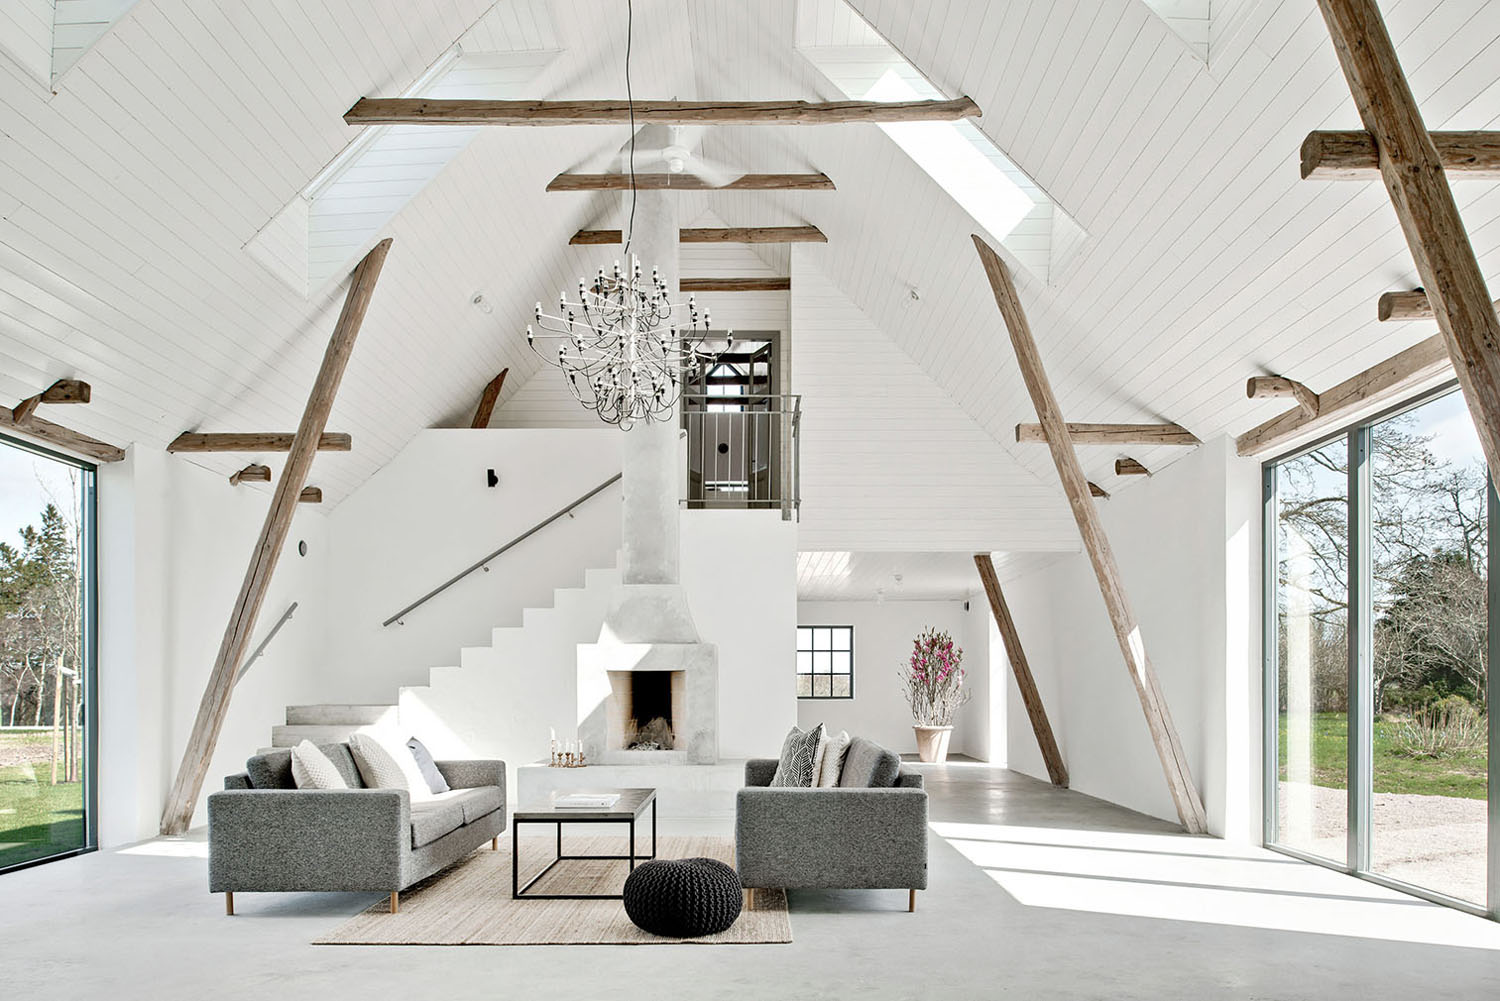 An old barn in sweden is converted into a modern country home